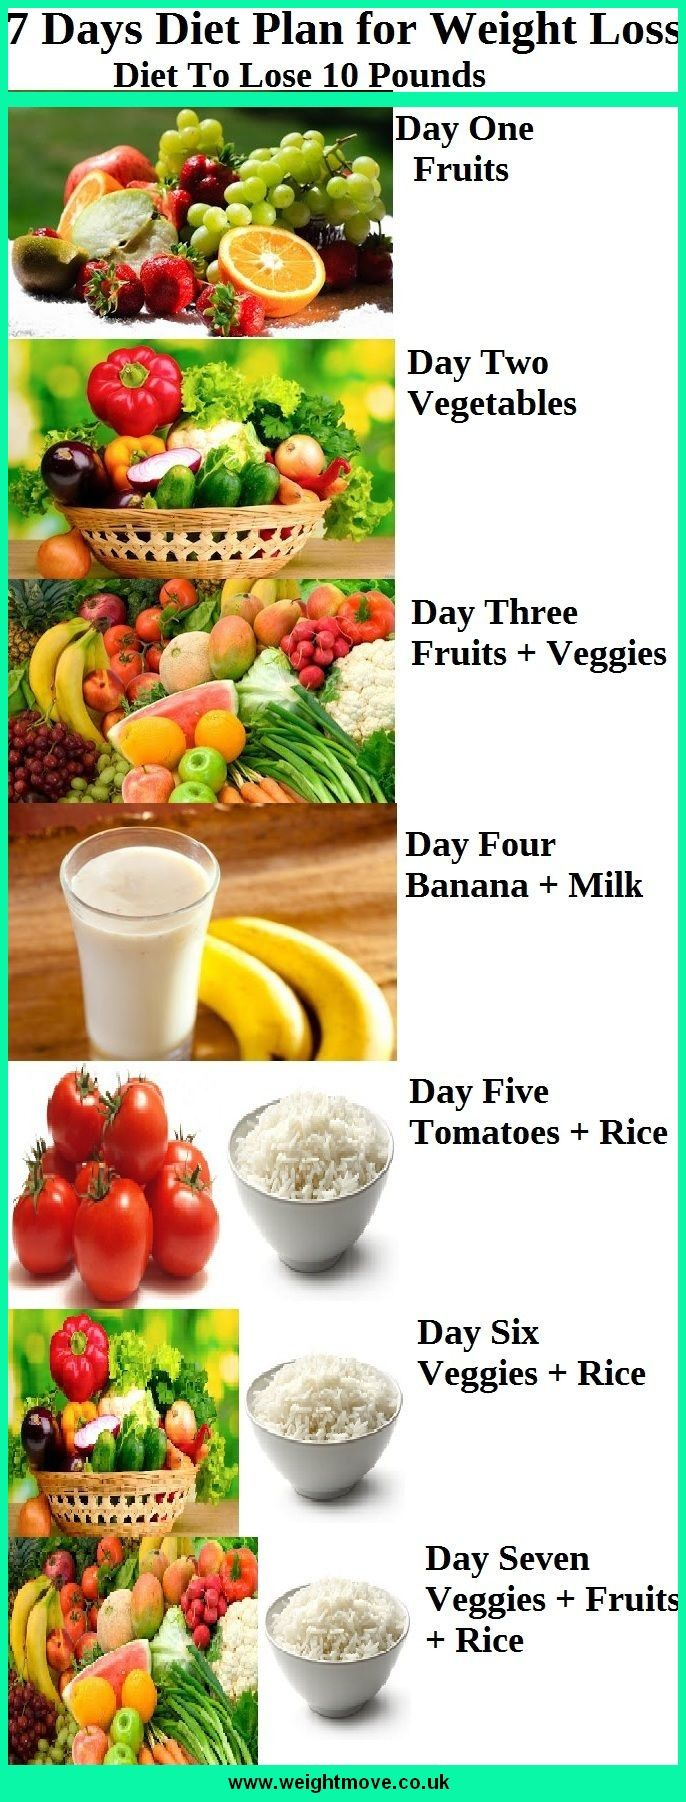 2 Week Diet Plan - 7 Days Diet Plan for Weight Loss - Diet To Lose 10  Pounds Day - A Foolproof, Science-Based System that's Guaranteed to Melt  Away All Your ...